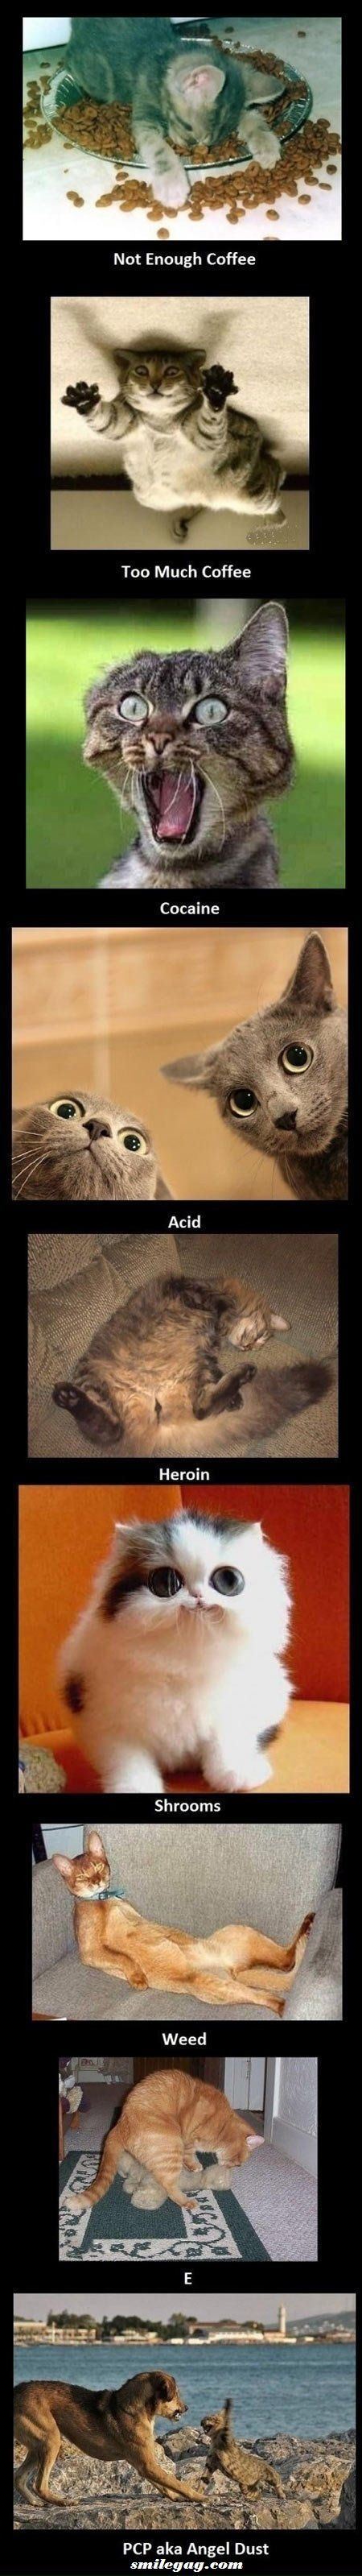 Cats on drugs! The second one is Kyle. For sure, definitely Kyle